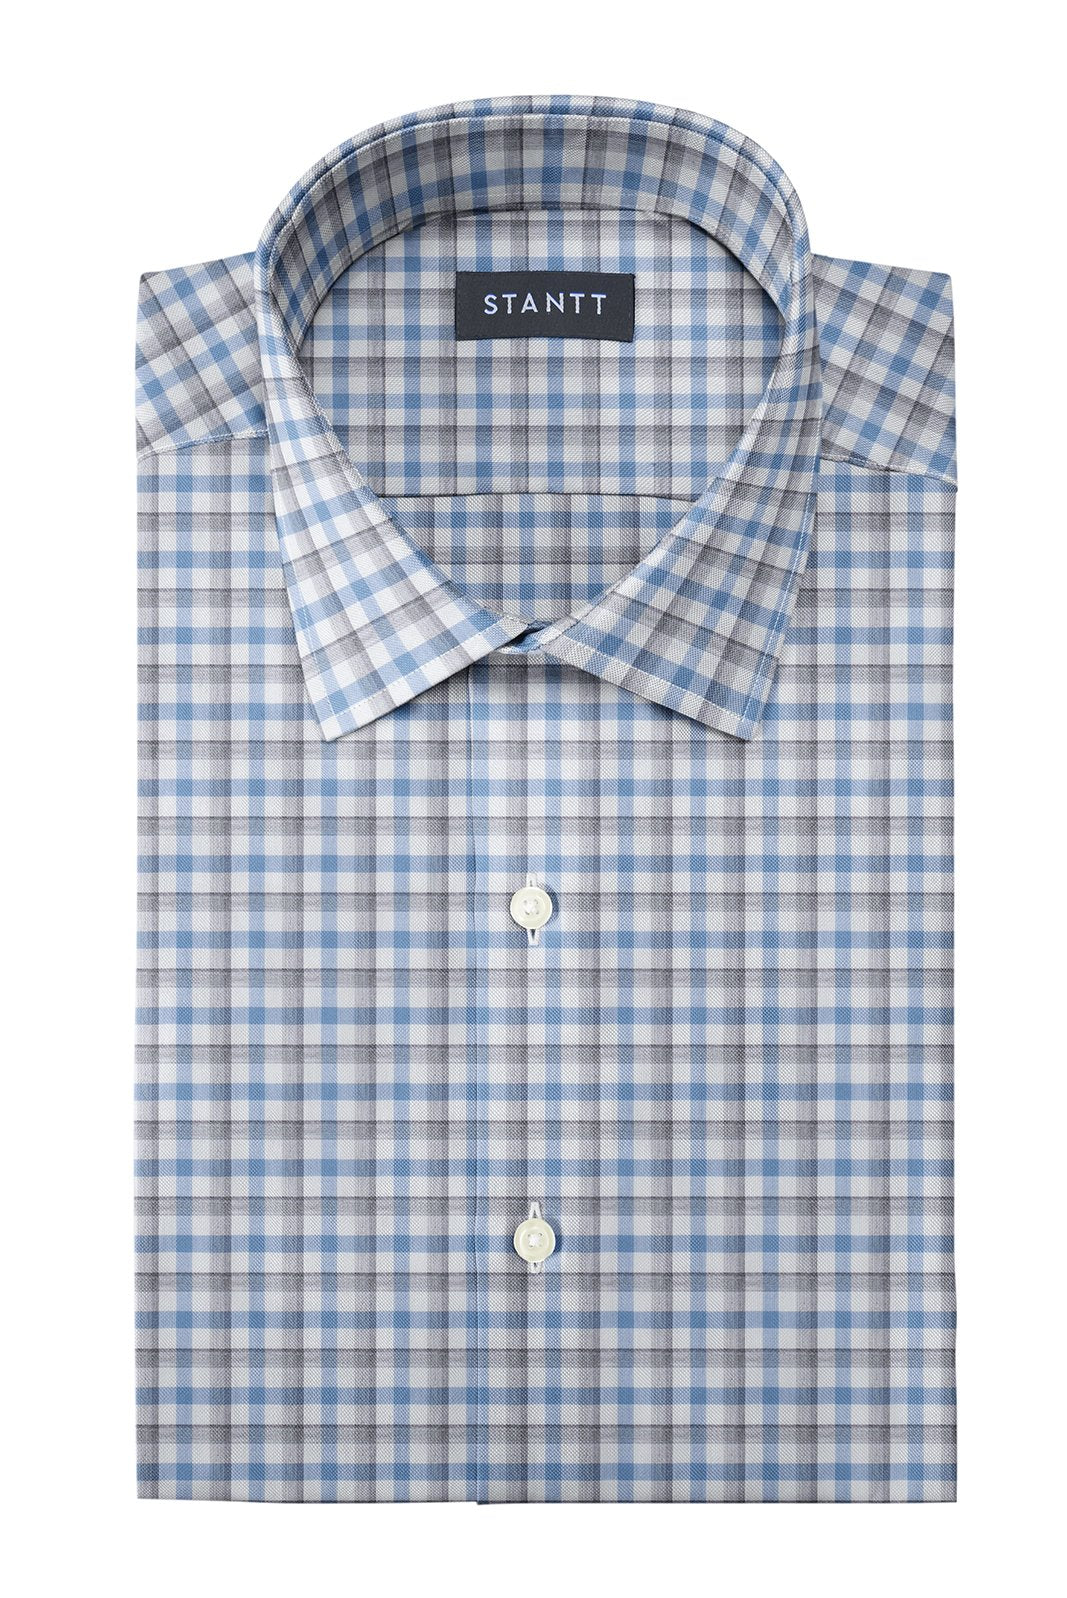 Melange Grey and Blue Check: Modified-Spread Collar, French Cuff